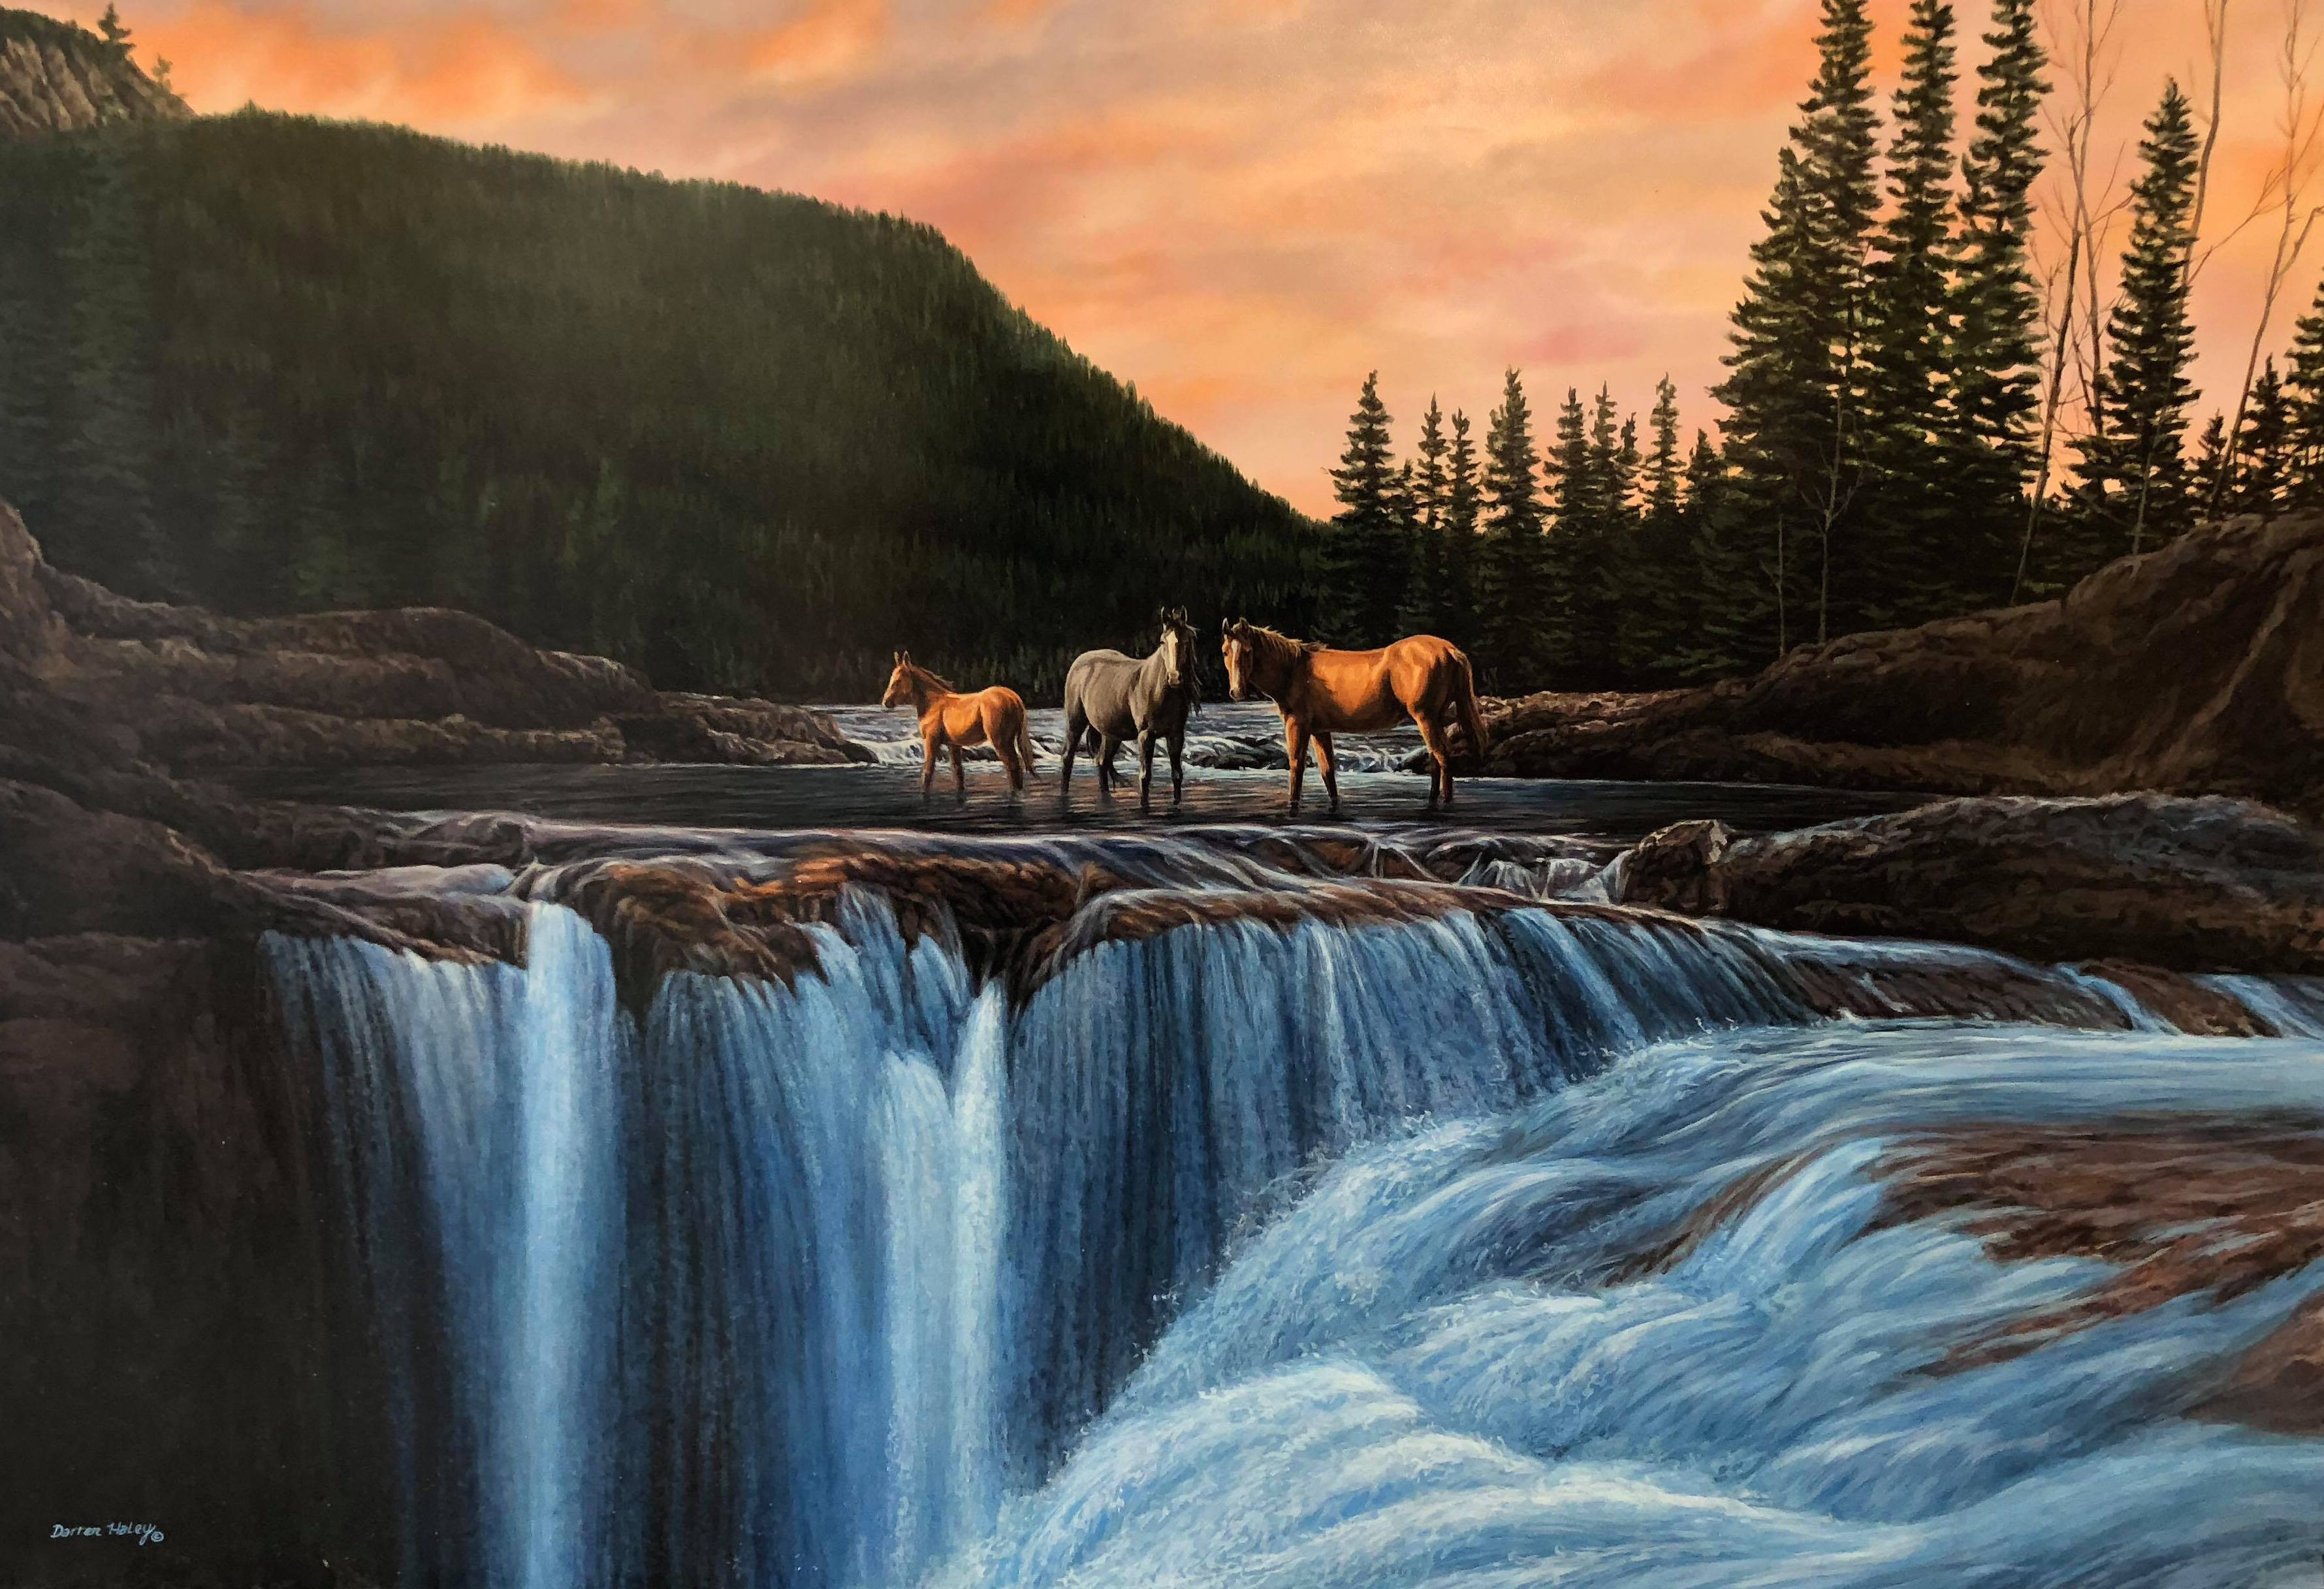 horses and elbow falls darren haley